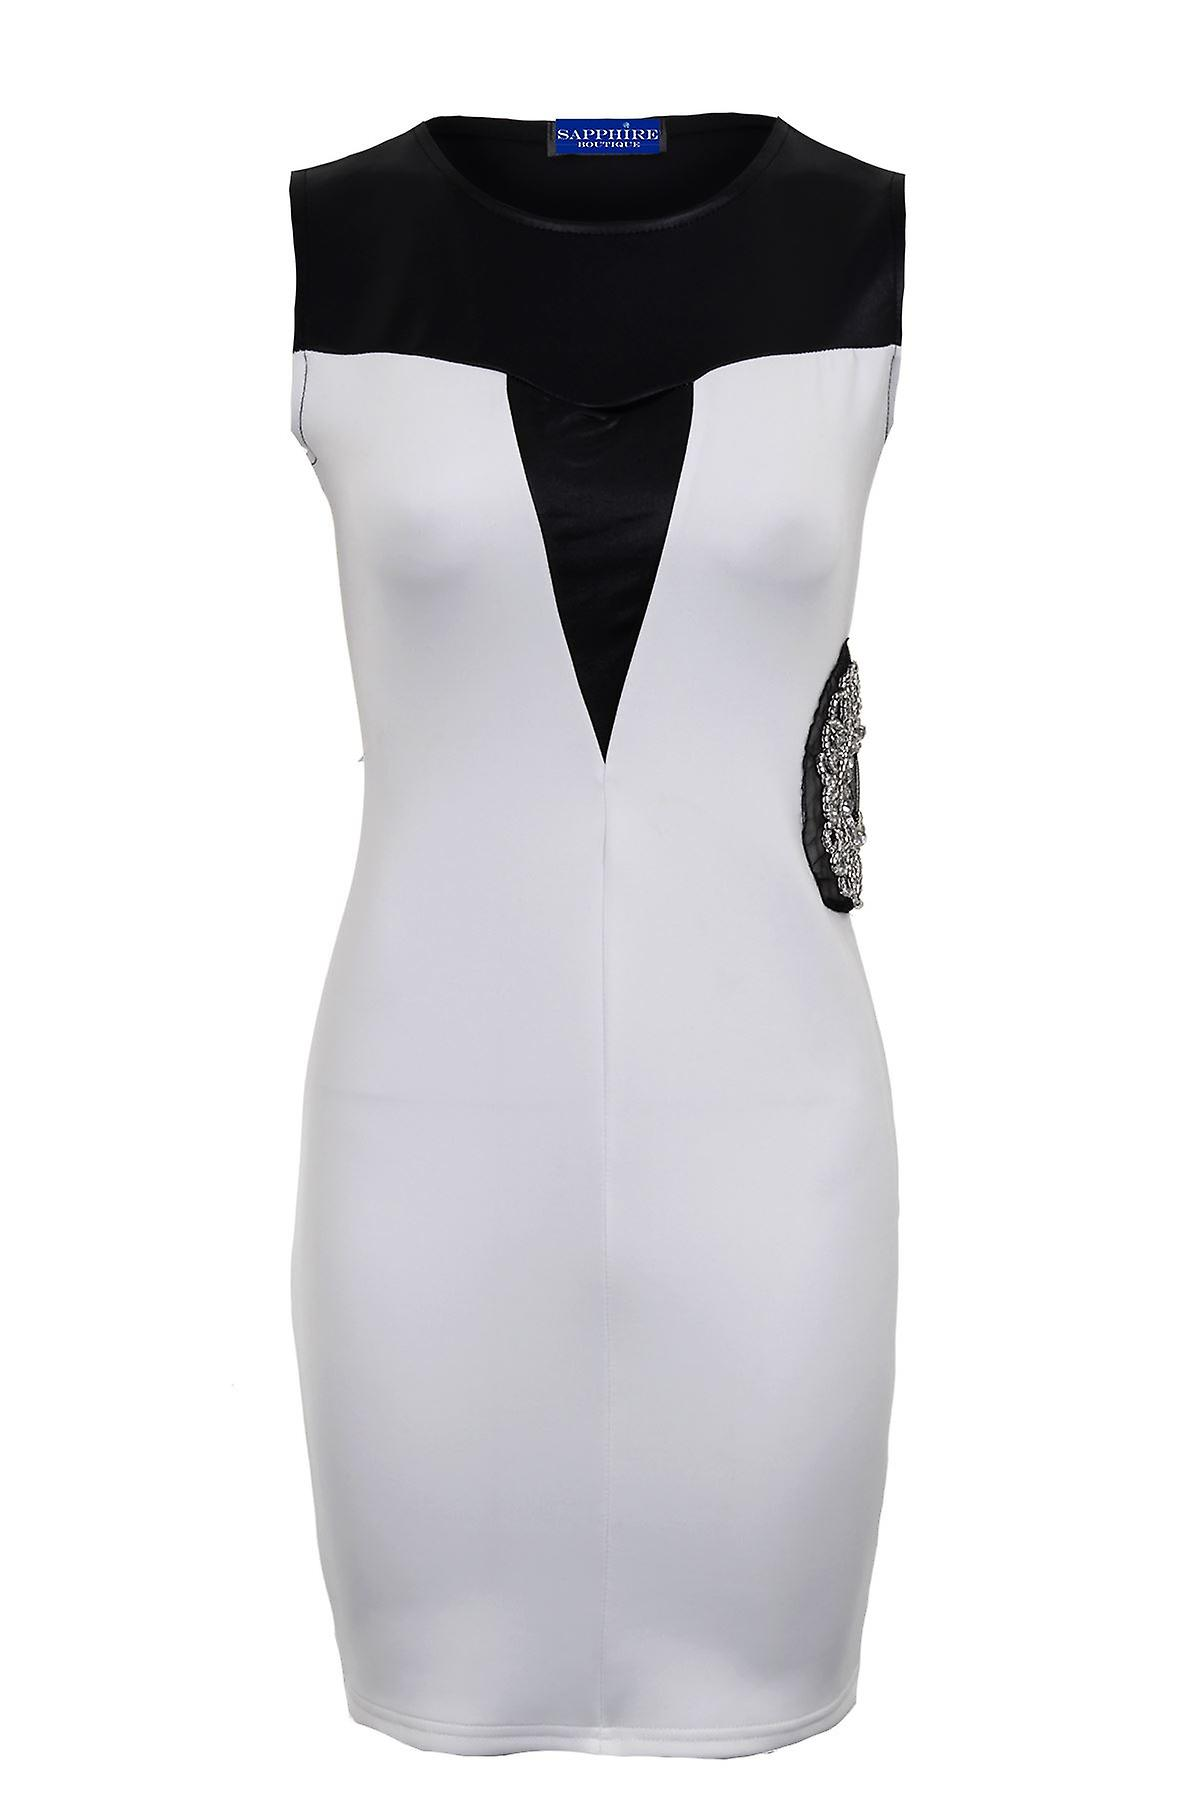 Ladies Sleeveless PVC Contrast Side Diamante Short Bodycon Women's Dress